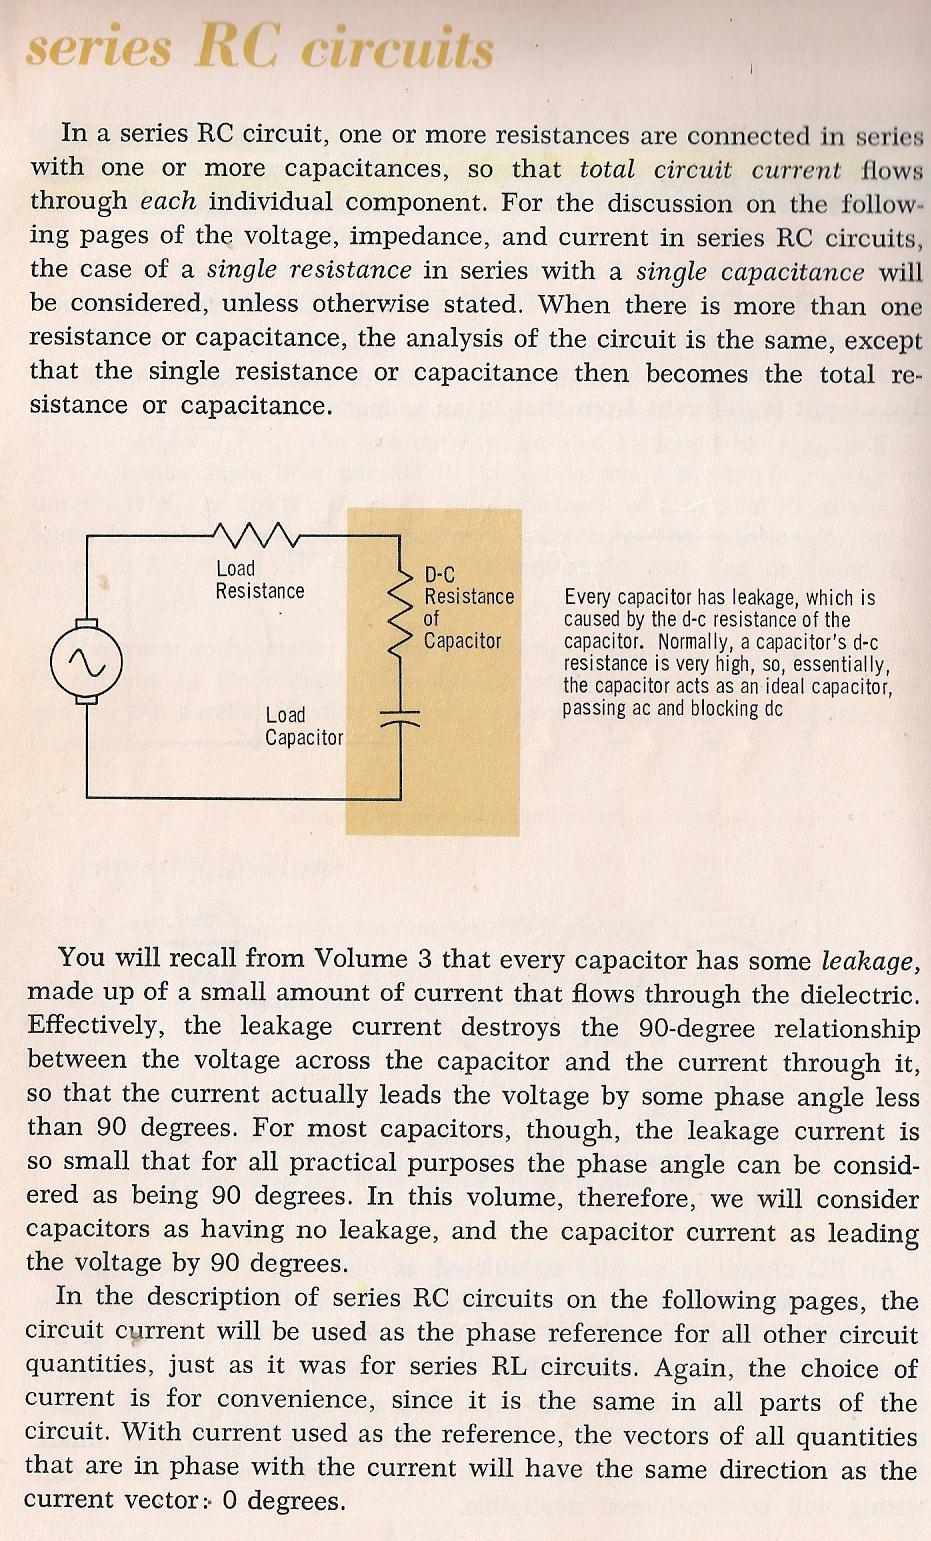 Rlc Circuits Series Rc Circuit Graph On Impedance Of Diagram 025 By Larry E Gugle K4rfe